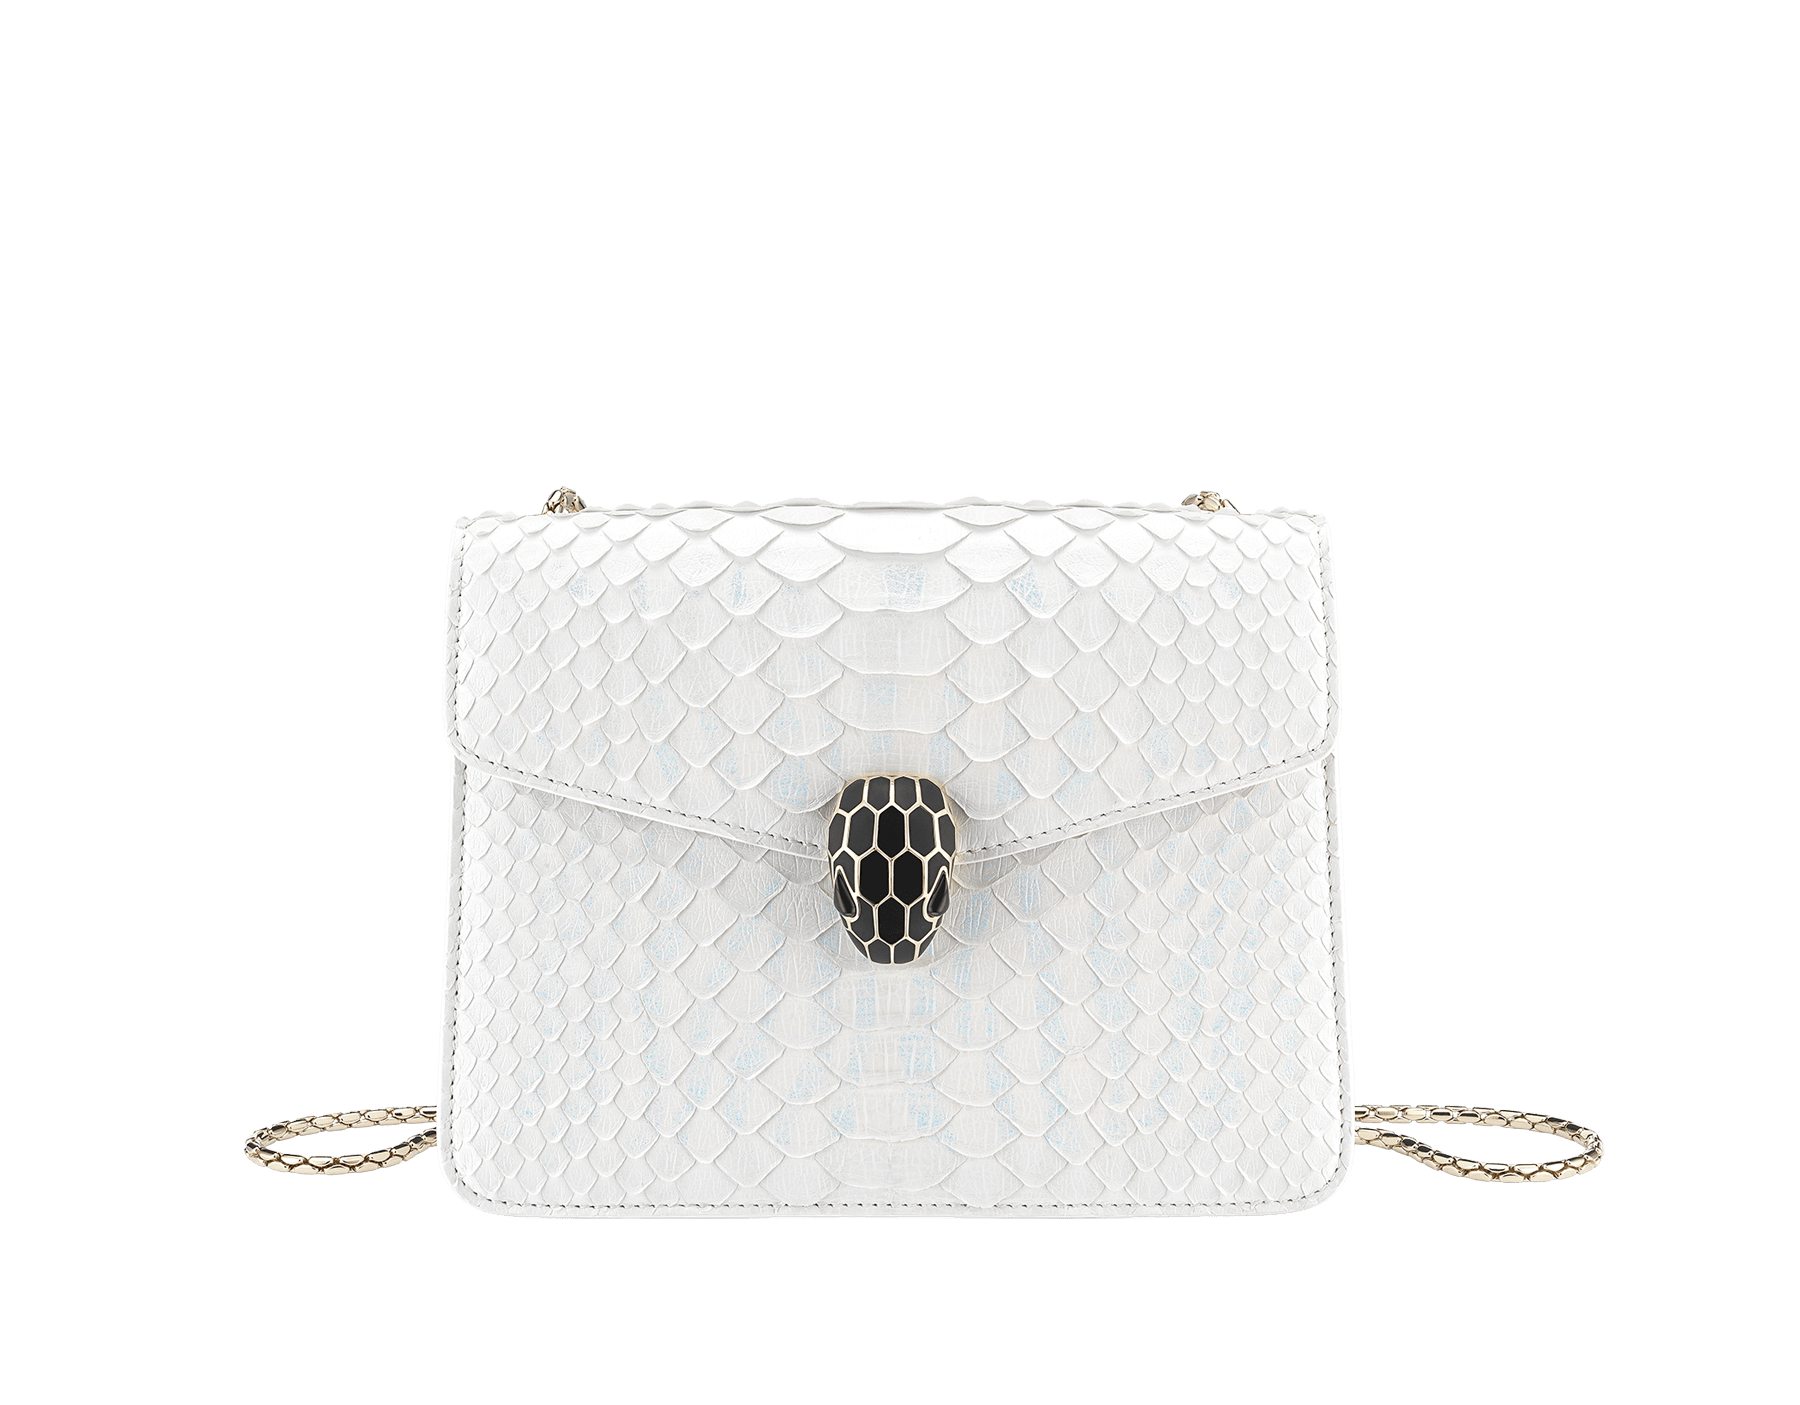 """Serpenti Forever"" crossbody bag in white agate python skin with an iridescent finishing. Iconic snake head closure in light gold plated brass enriched with matte and shiny black enamel, and black onyx eyes. 422-Pa image 1"